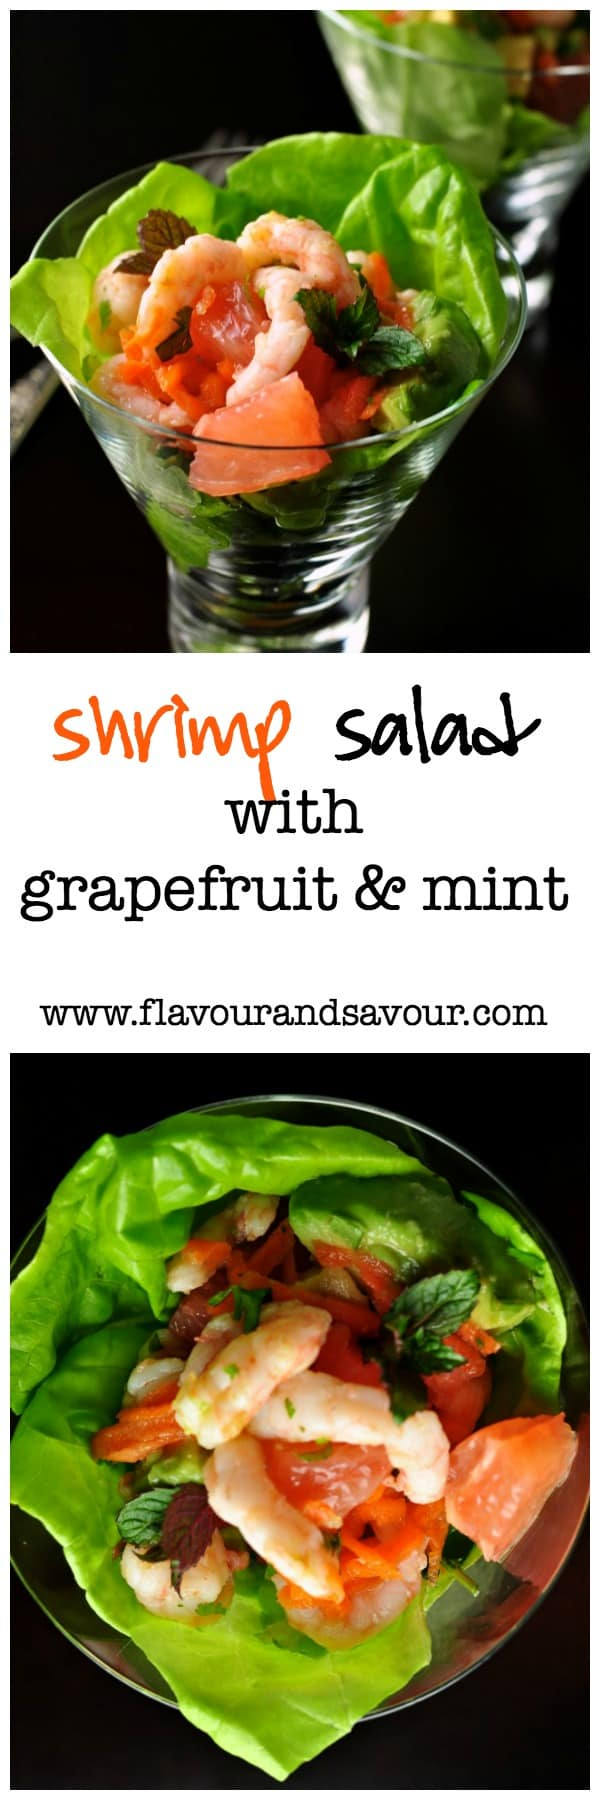 Shrimp Salad with Grapefruit and Mint. Amazing flavours in this fabulous salad! |www.flavourandsavour.com